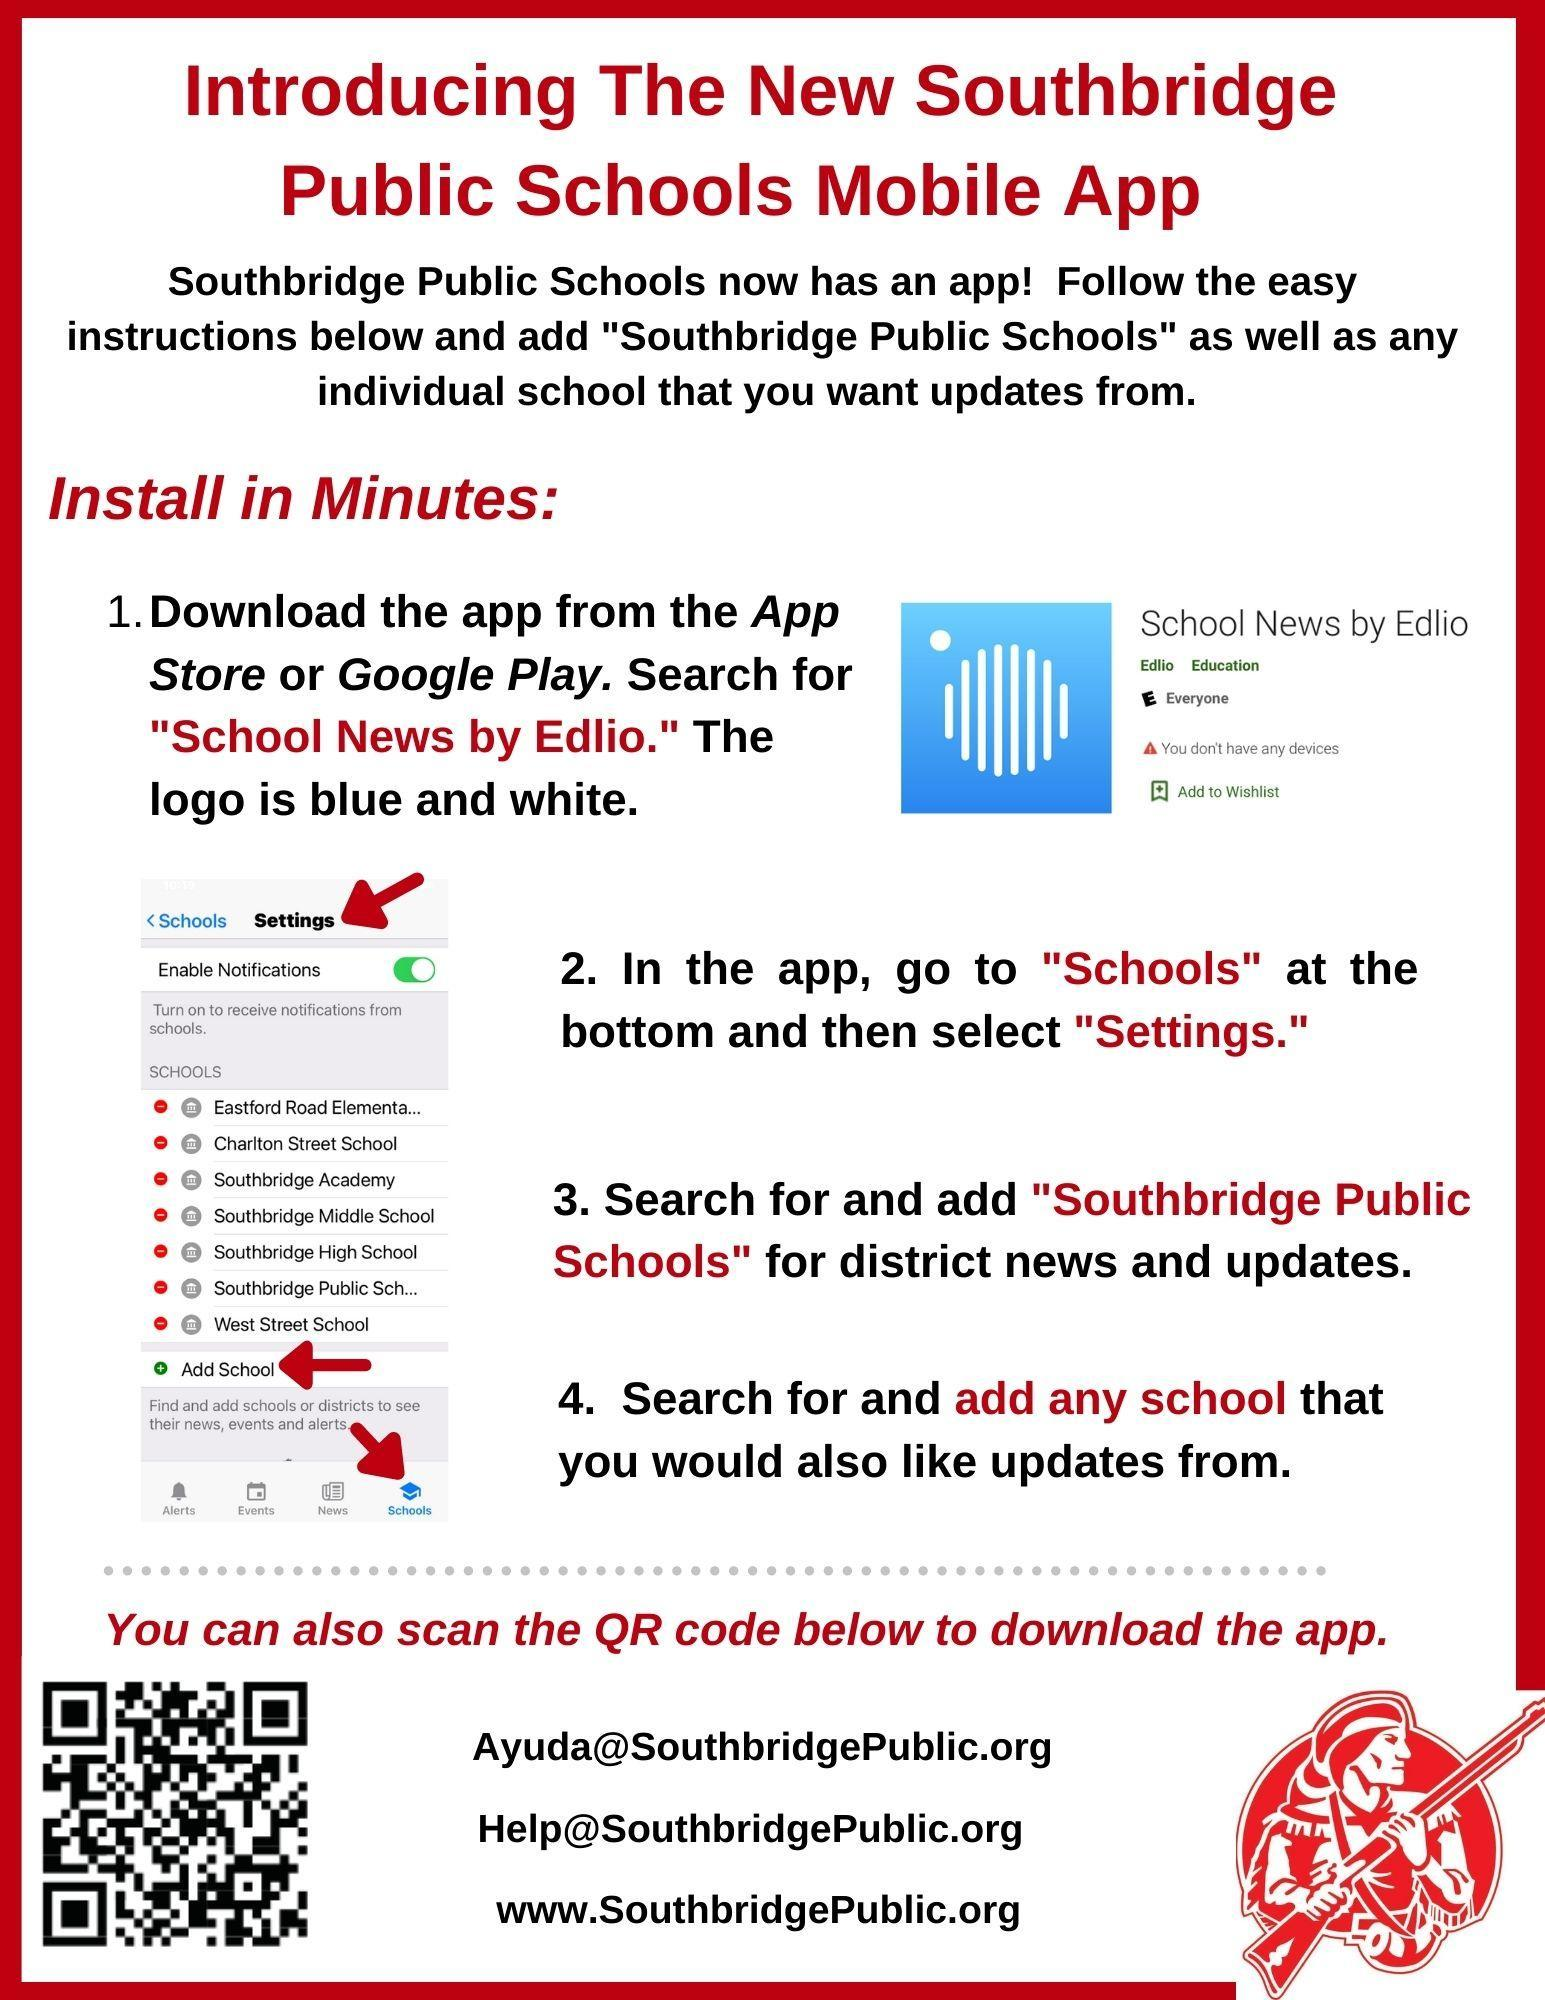 Flyer in English about the Southbridge Public Schools App.  All information is also in text on this page.